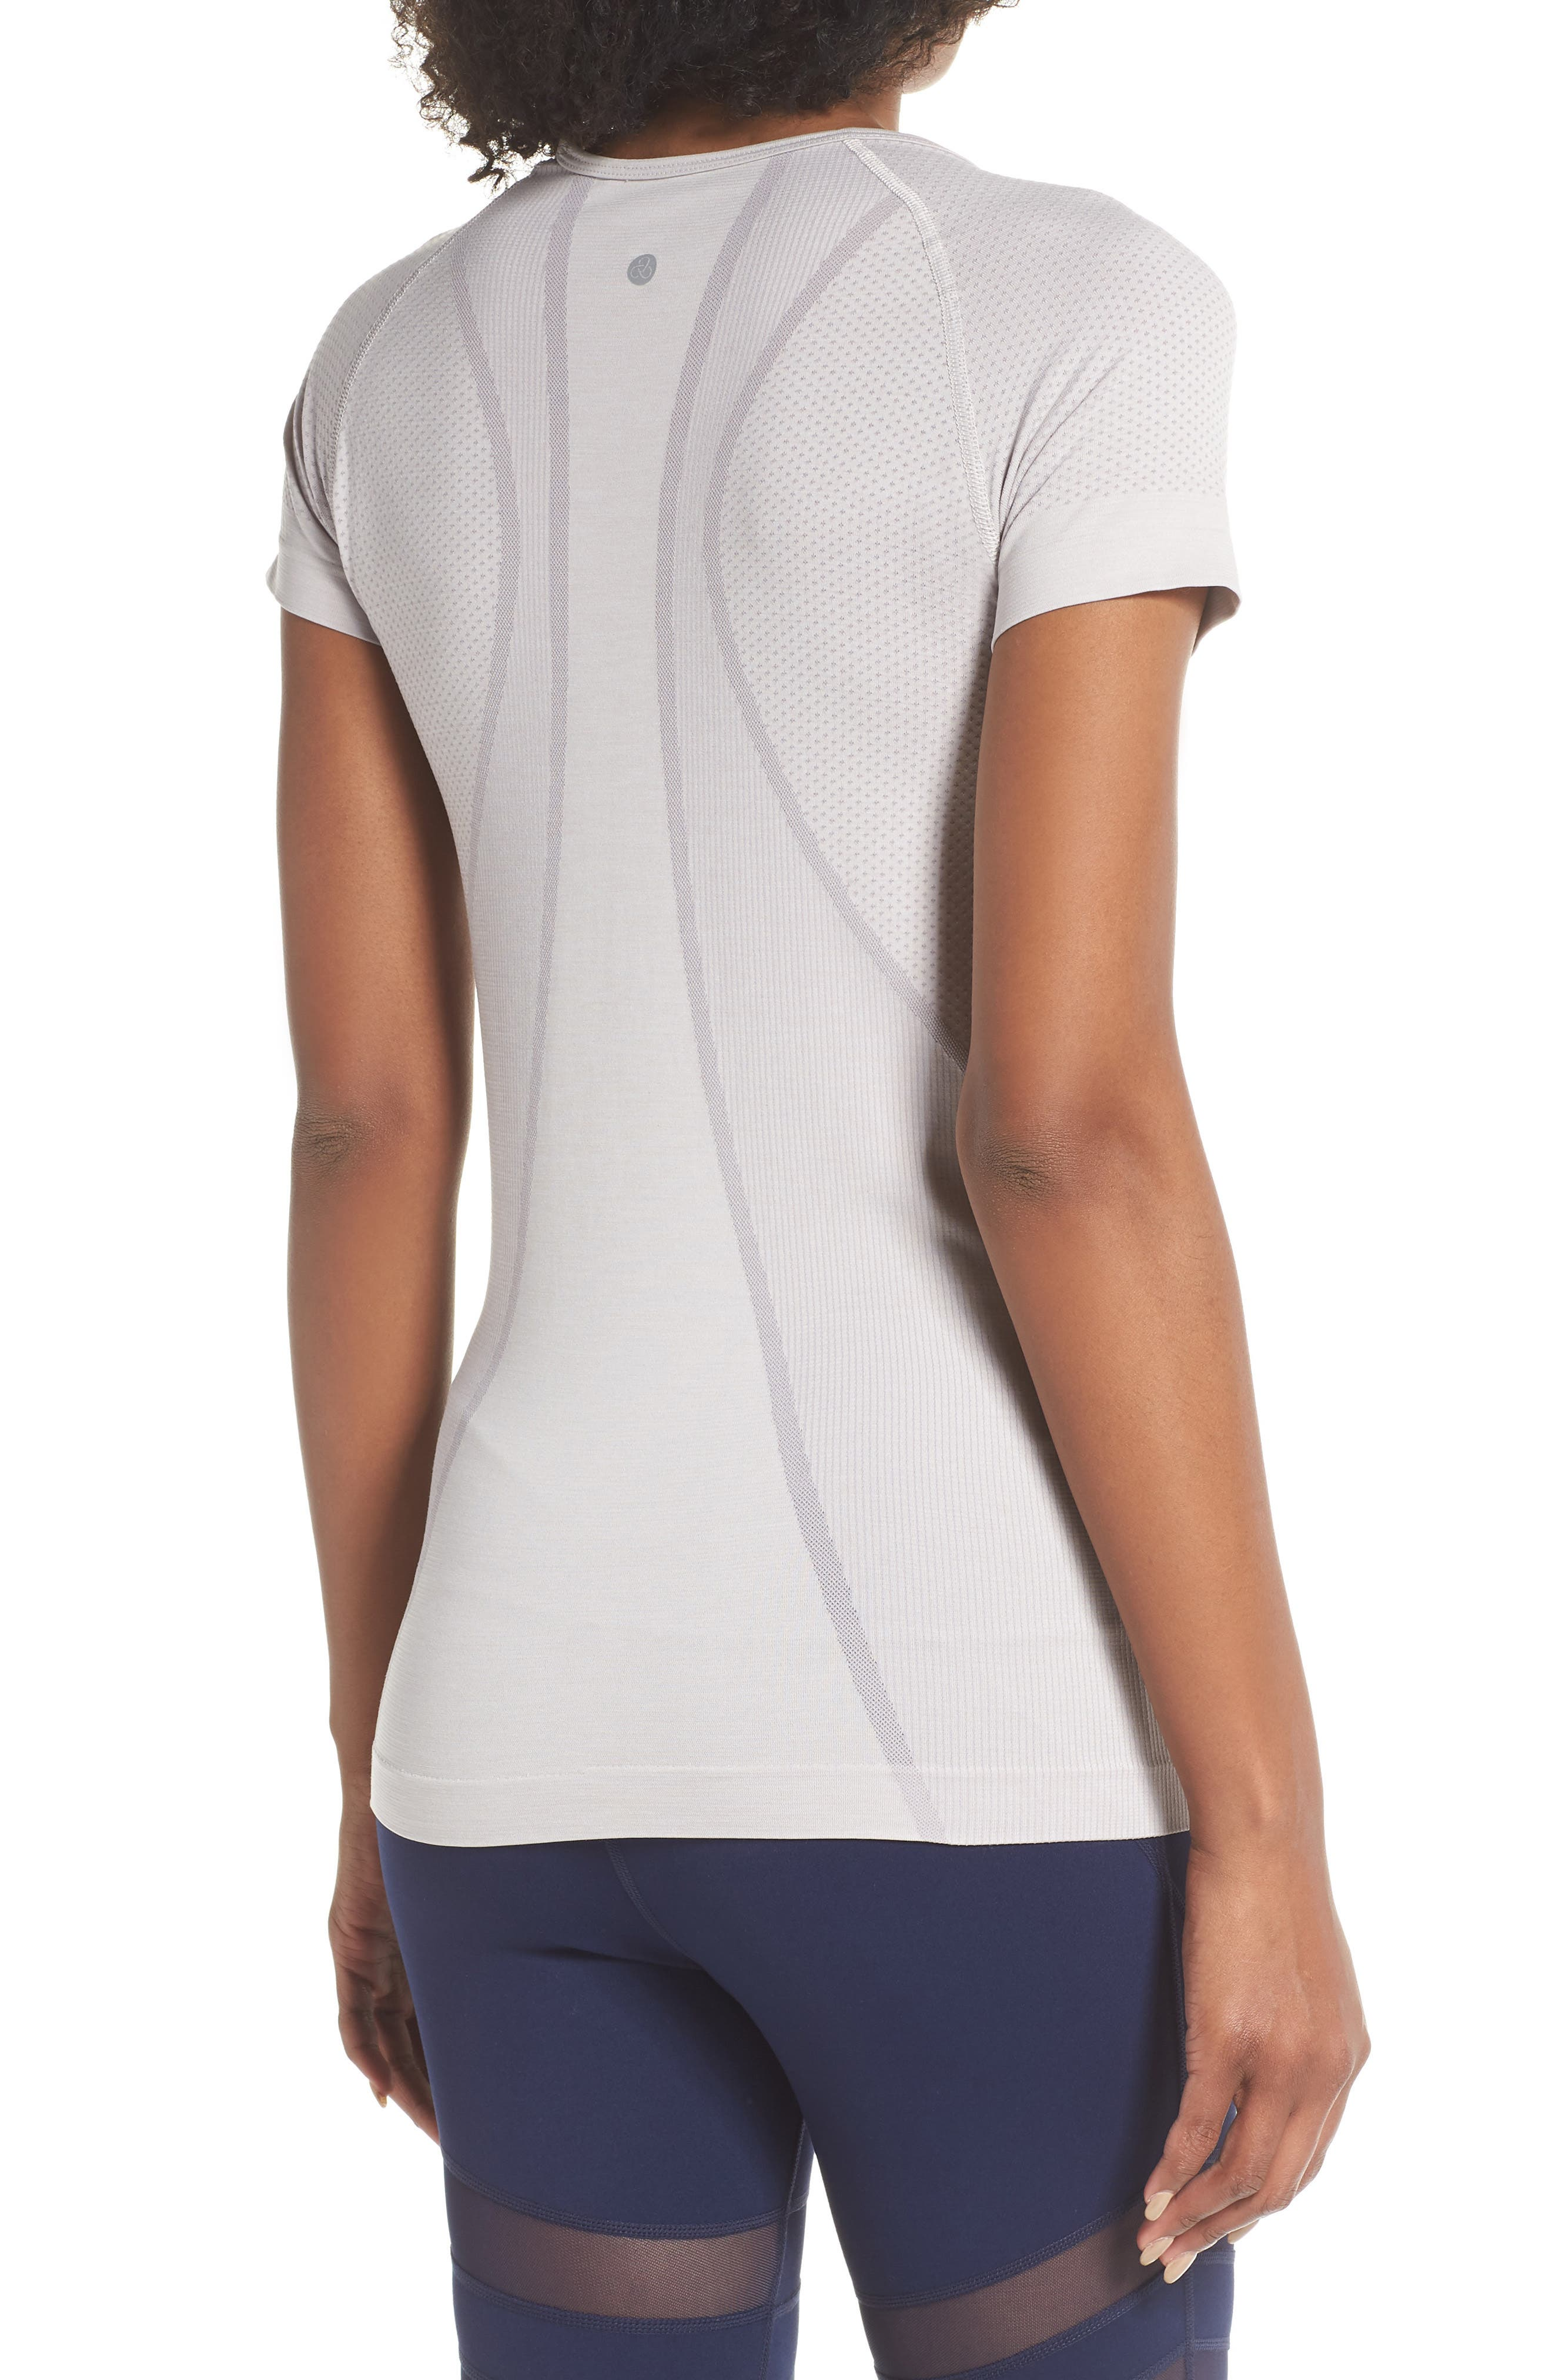 ZELLA, Stand Out Seamless Training Tee, Alternate thumbnail 2, color, 050